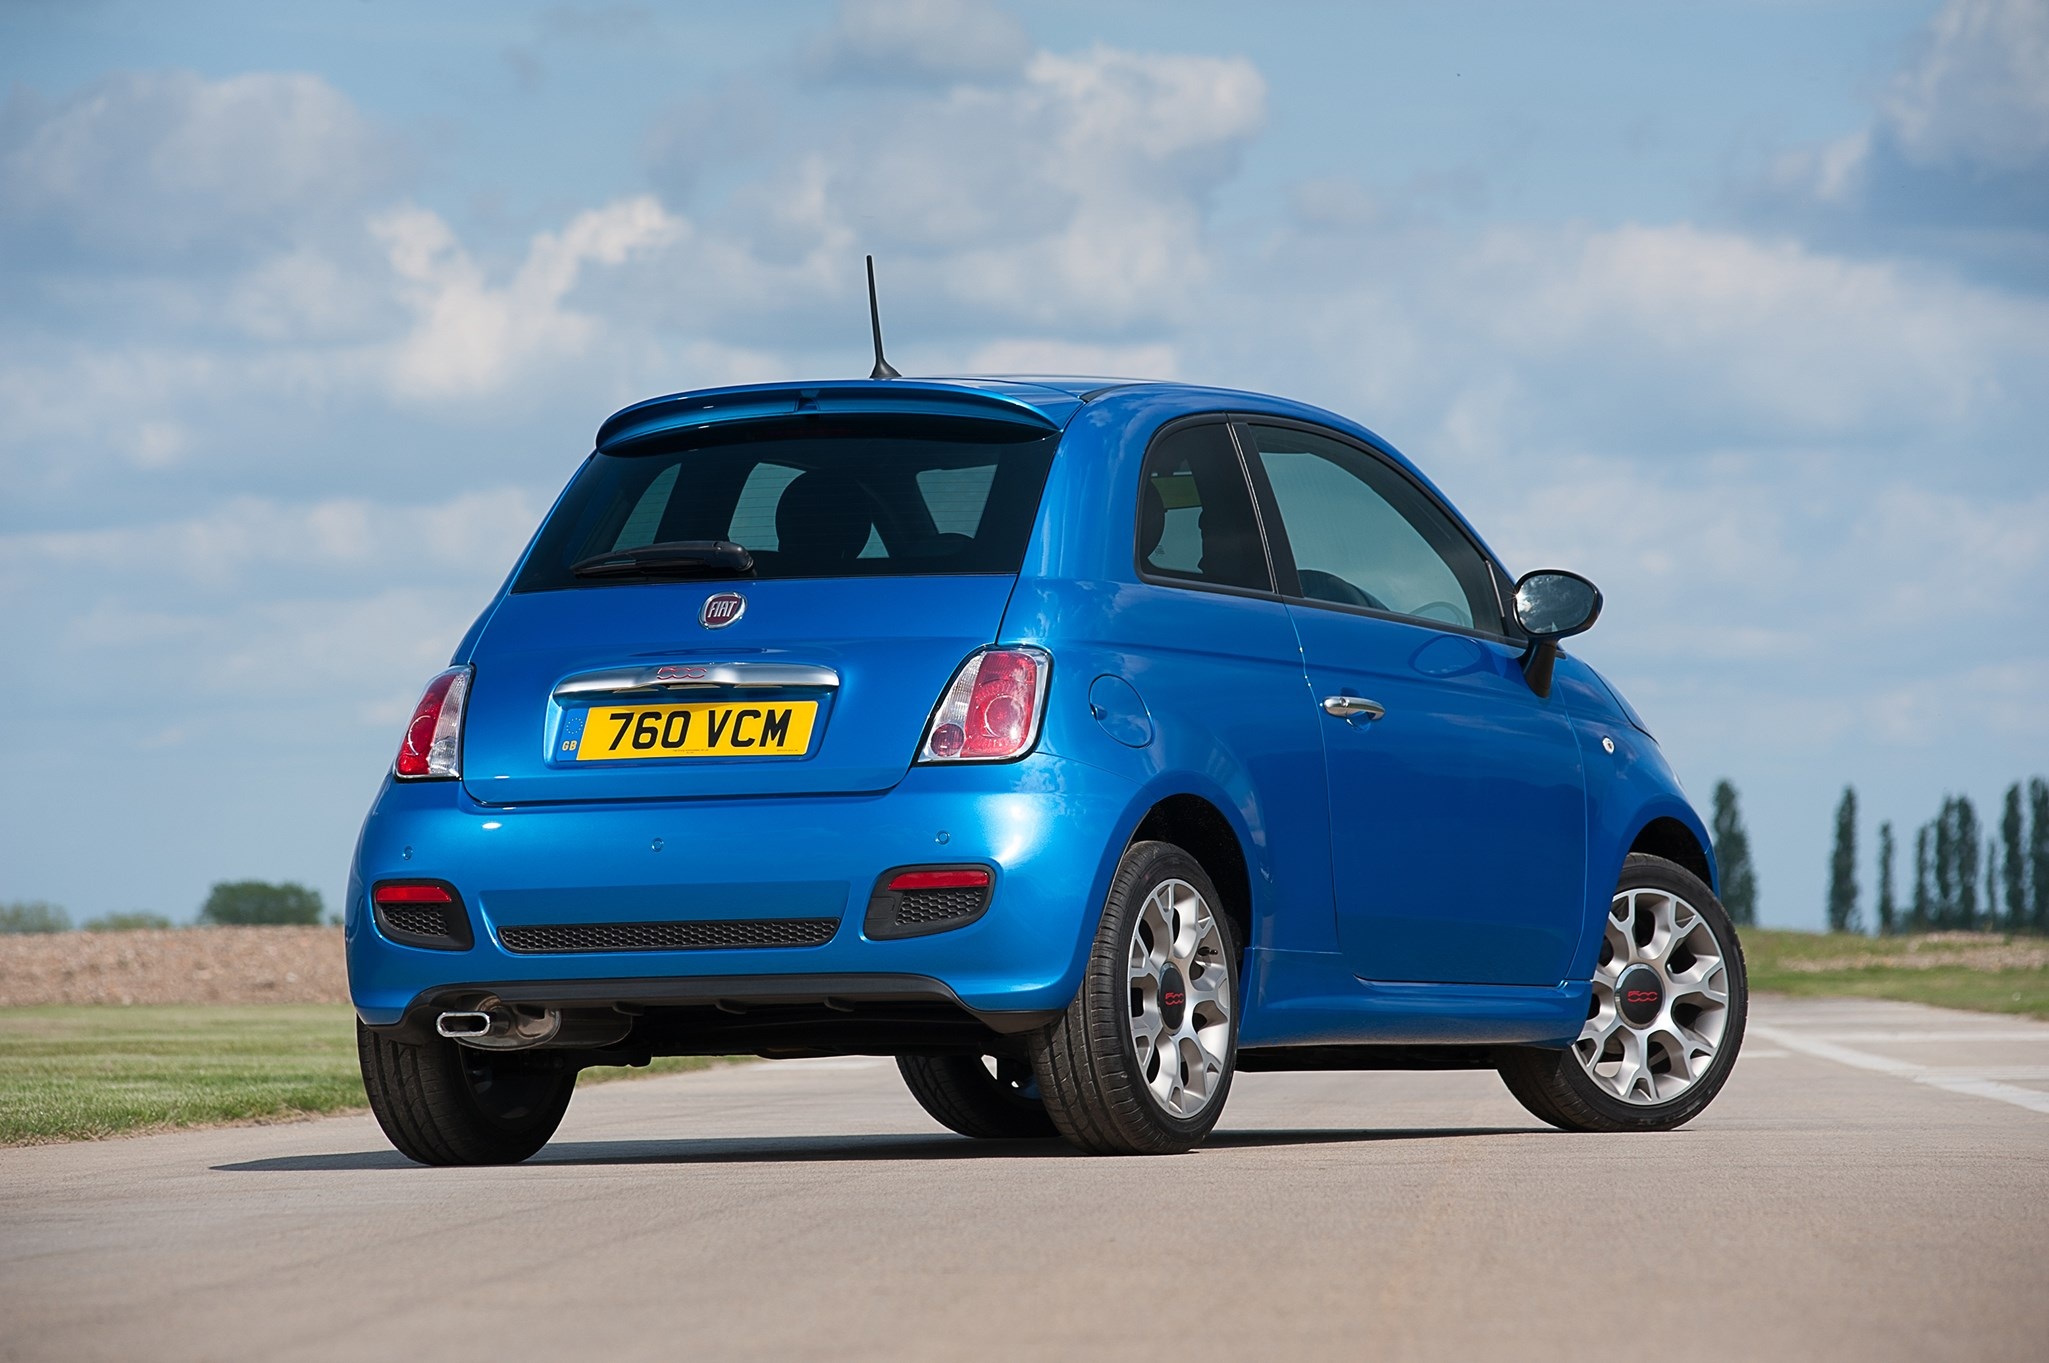 Marvelous Fiat 500 Information: Everything You Need To Know If You Own It, Are  Thinking Of Buying One Or Just Want To Find Out More About The Fashionable  City Car.